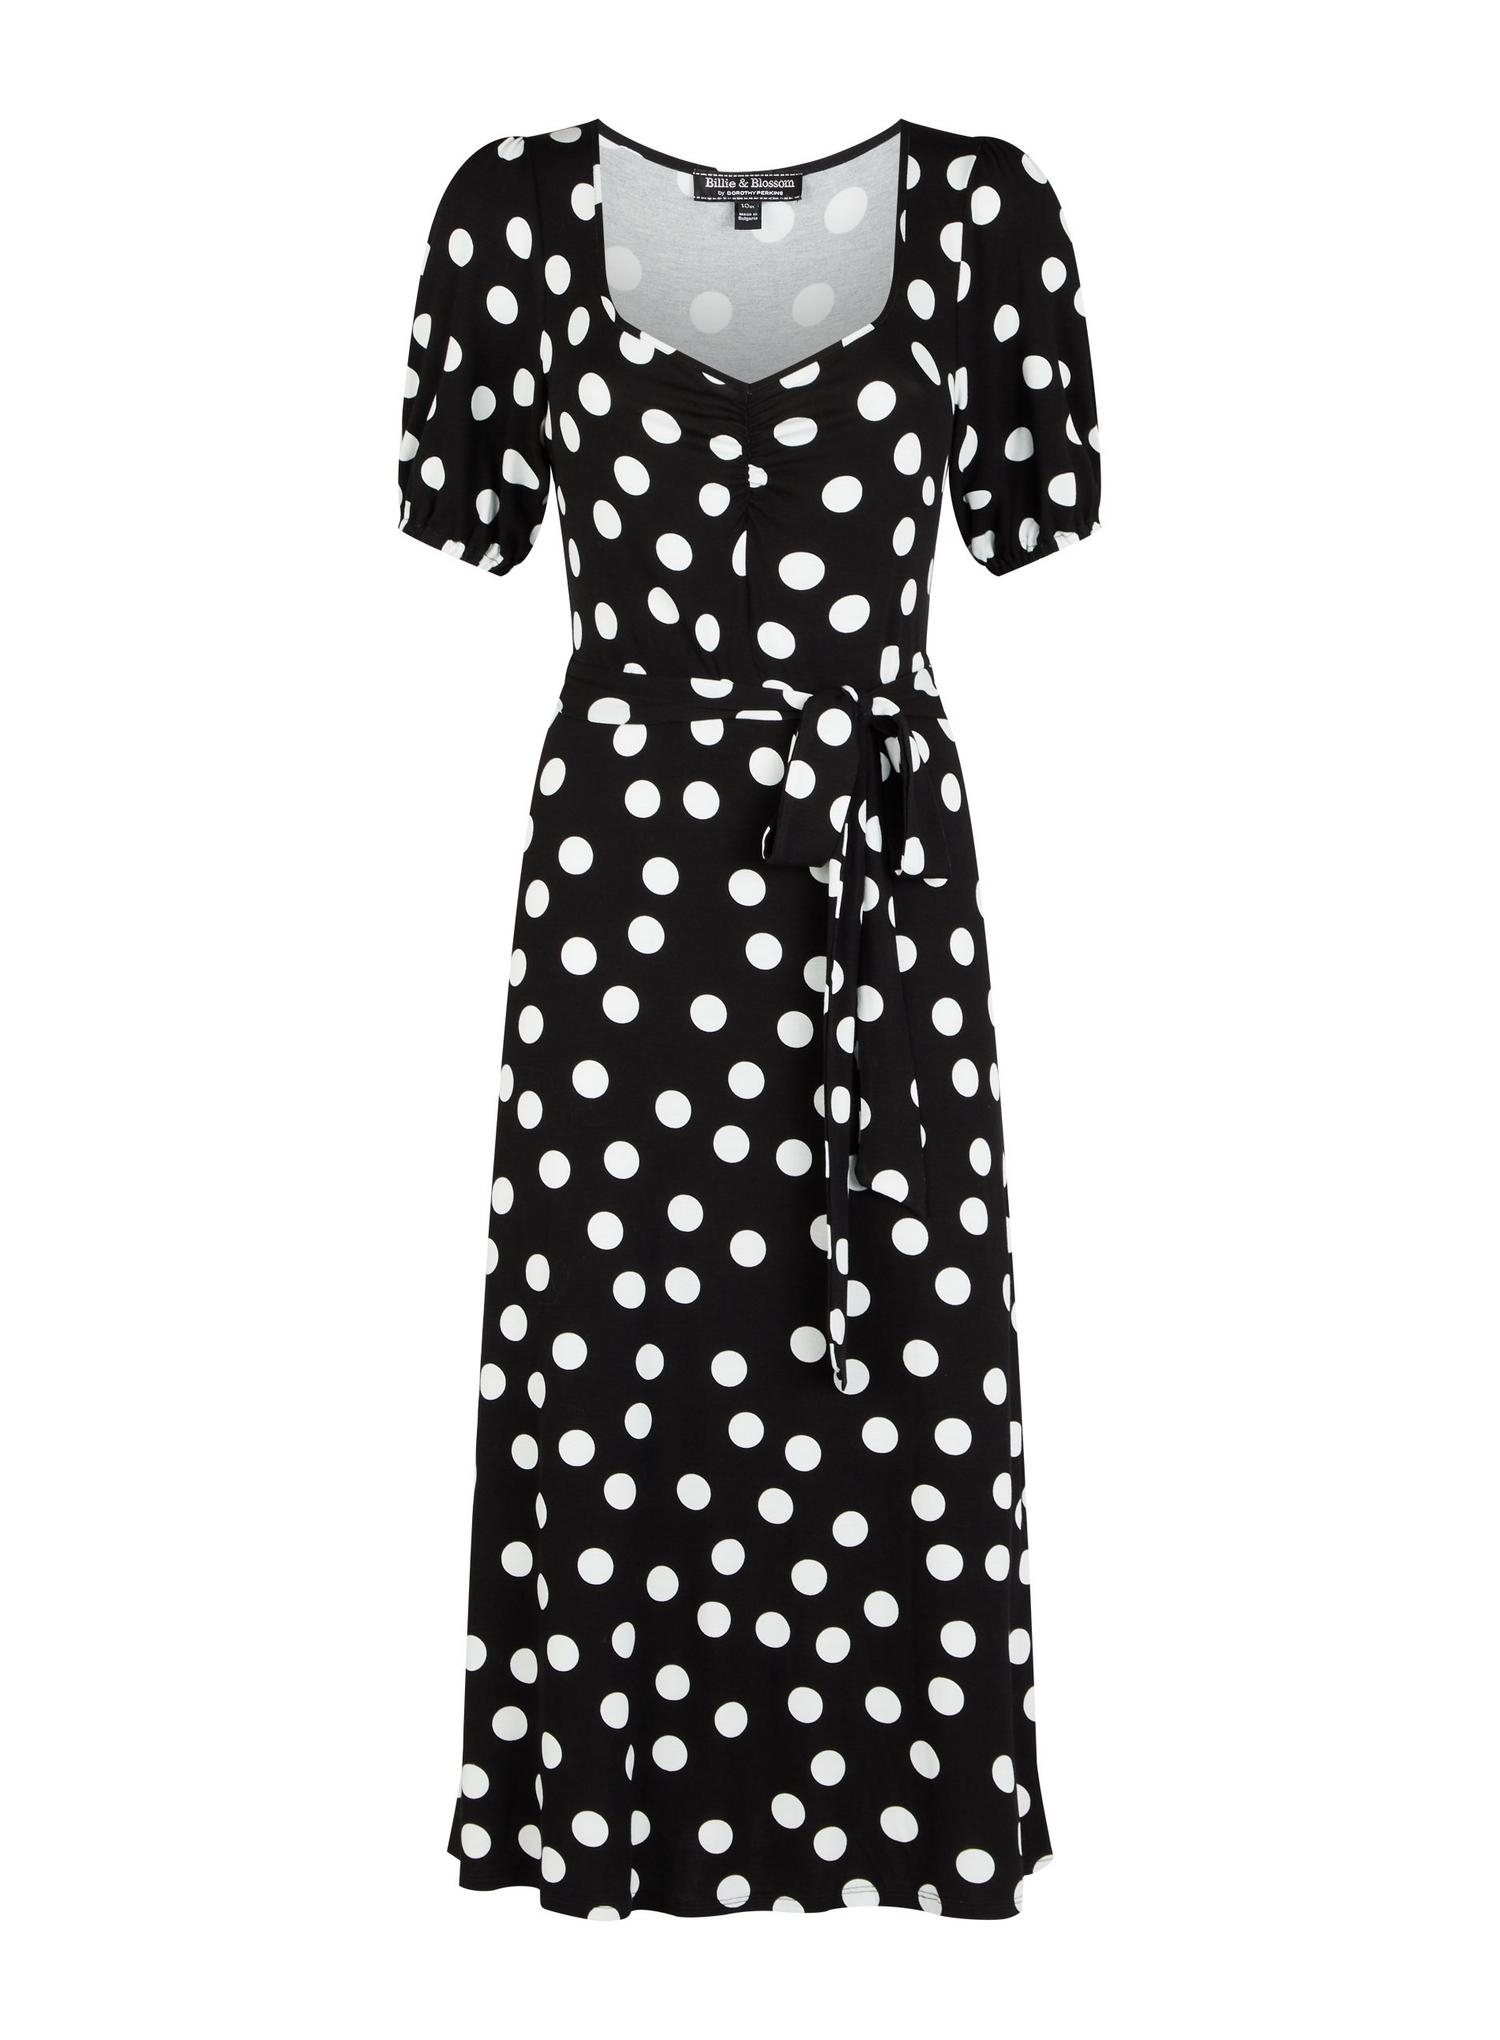 105 Monochrome Spot Print Midi Dress image number 2